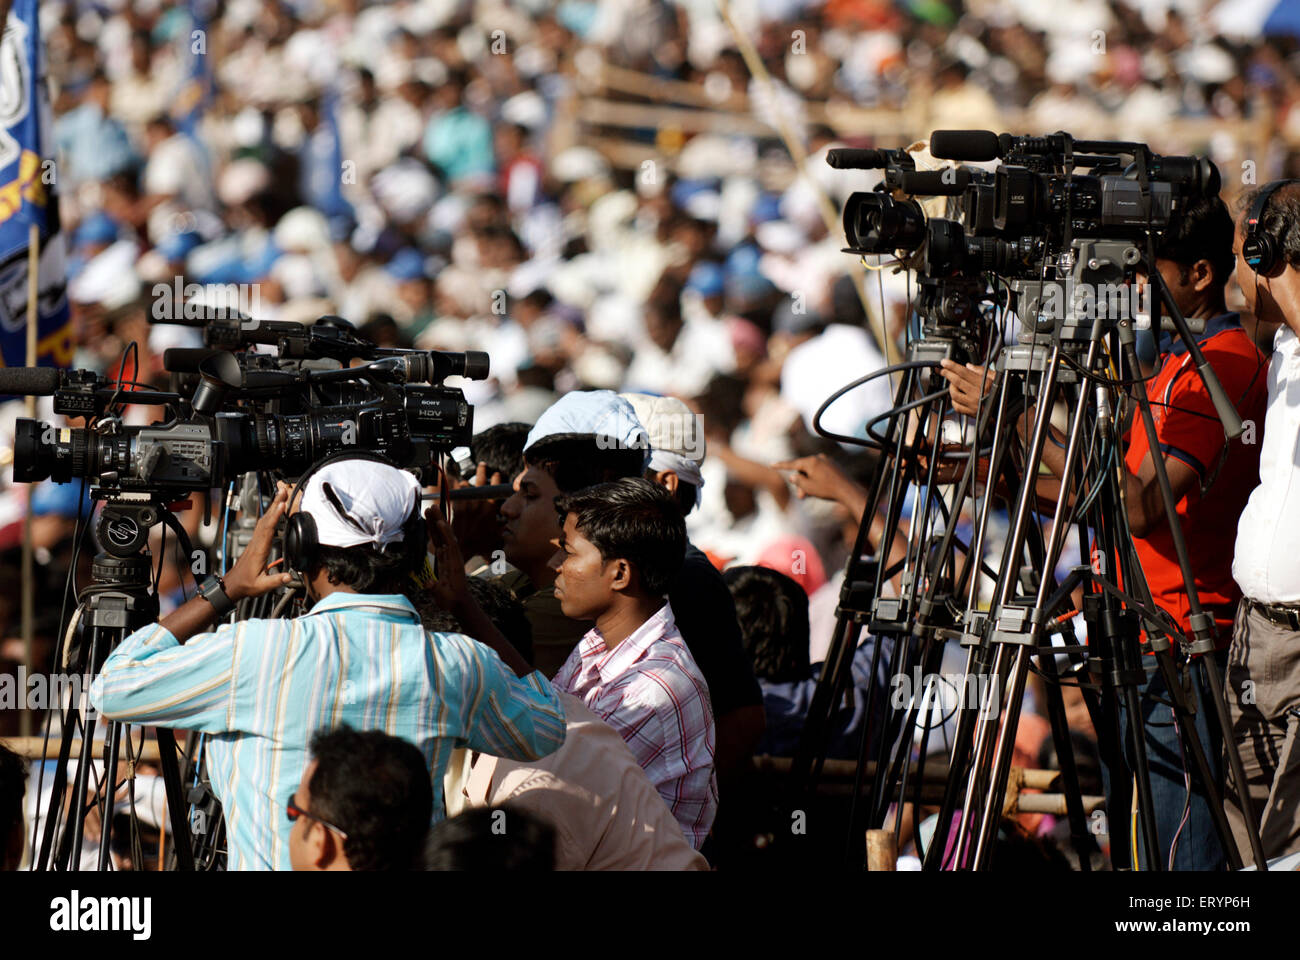 Cameramen representing different news channels electronic media election campaign rally ; Bombay - Stock Image